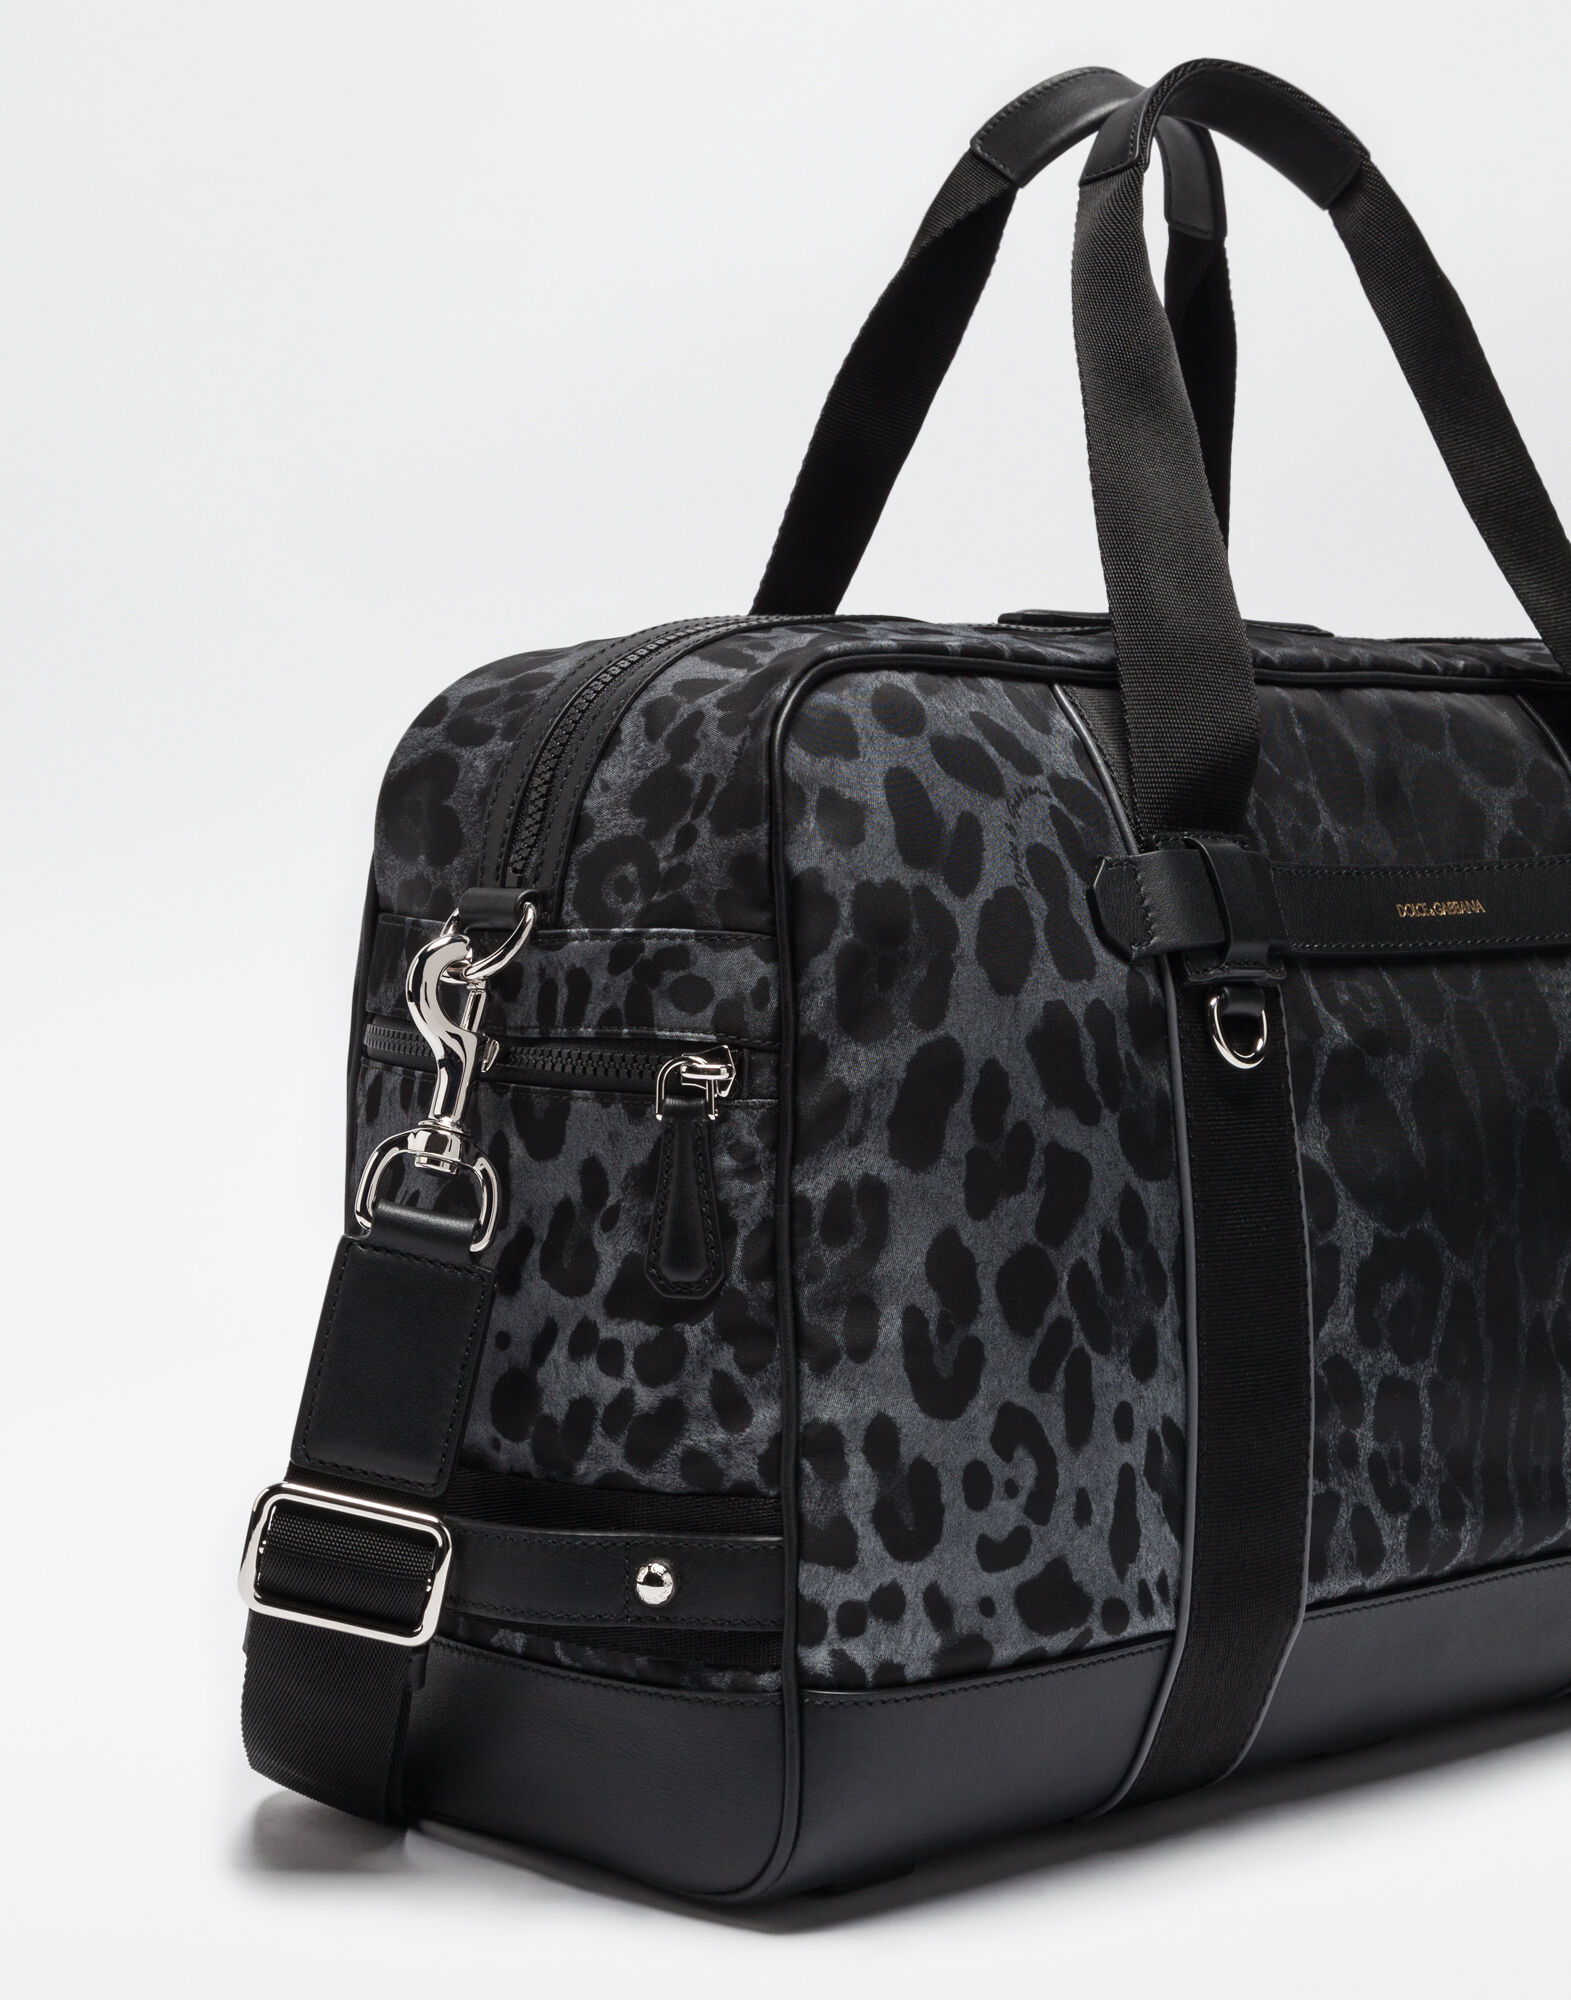 PRINTED NYLON TRAVEL BAG